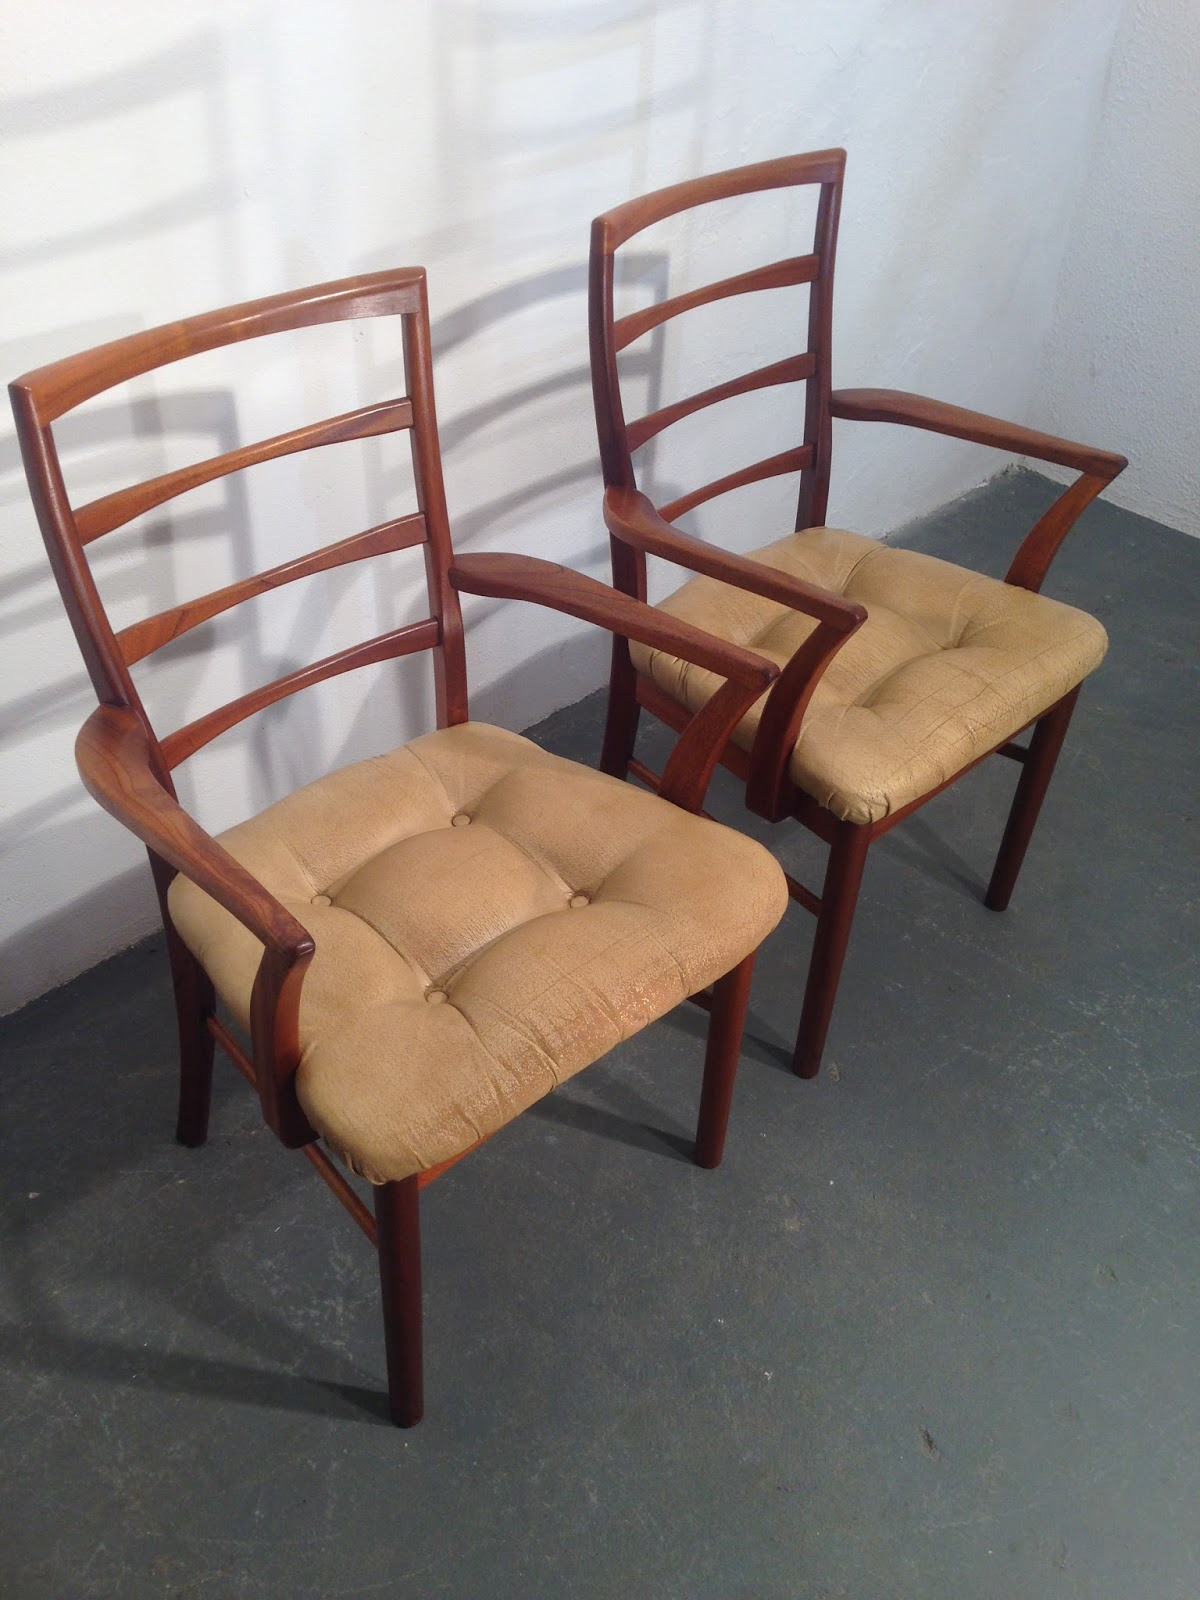 retro dining chairs ireland chairman meaning in tamil ocd vintage furniture mcintosh set